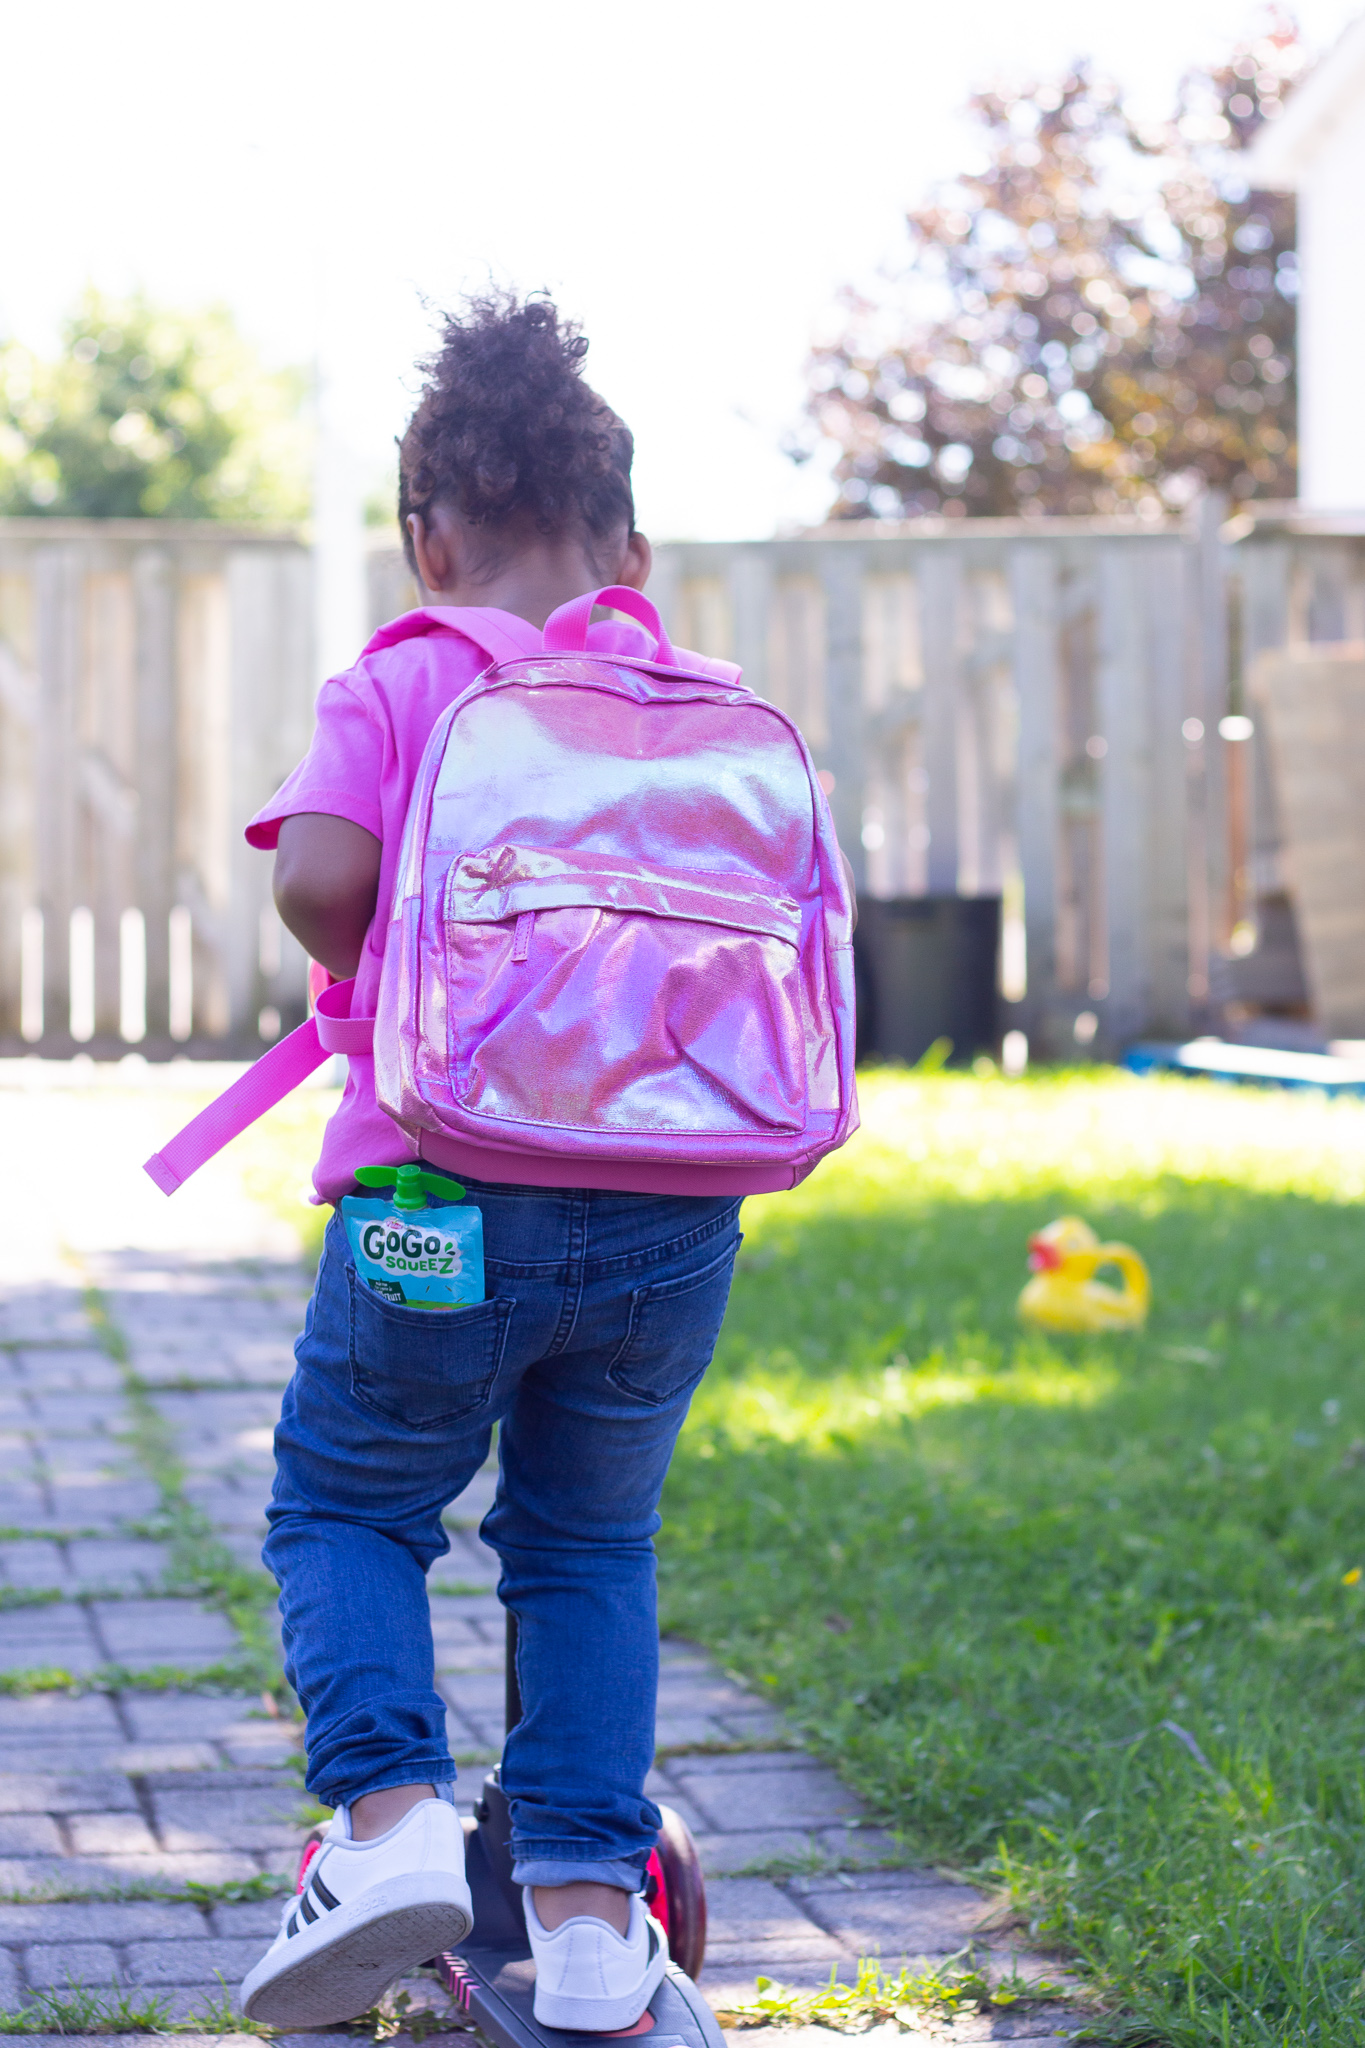 Toddler putting fruit pouch in backpack